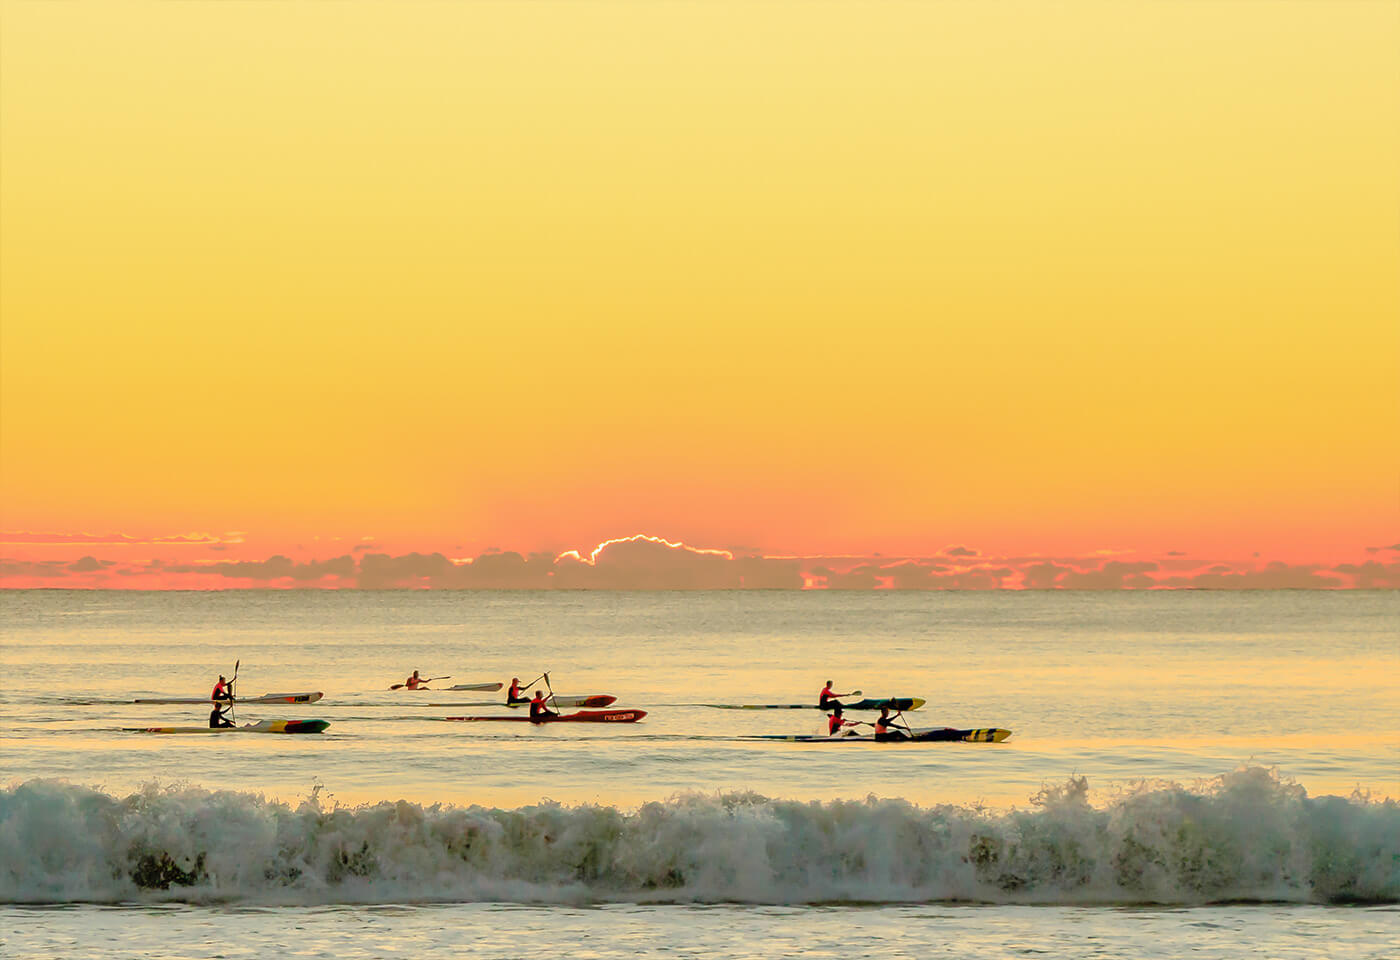 Surfers on water with sunset on the horizon